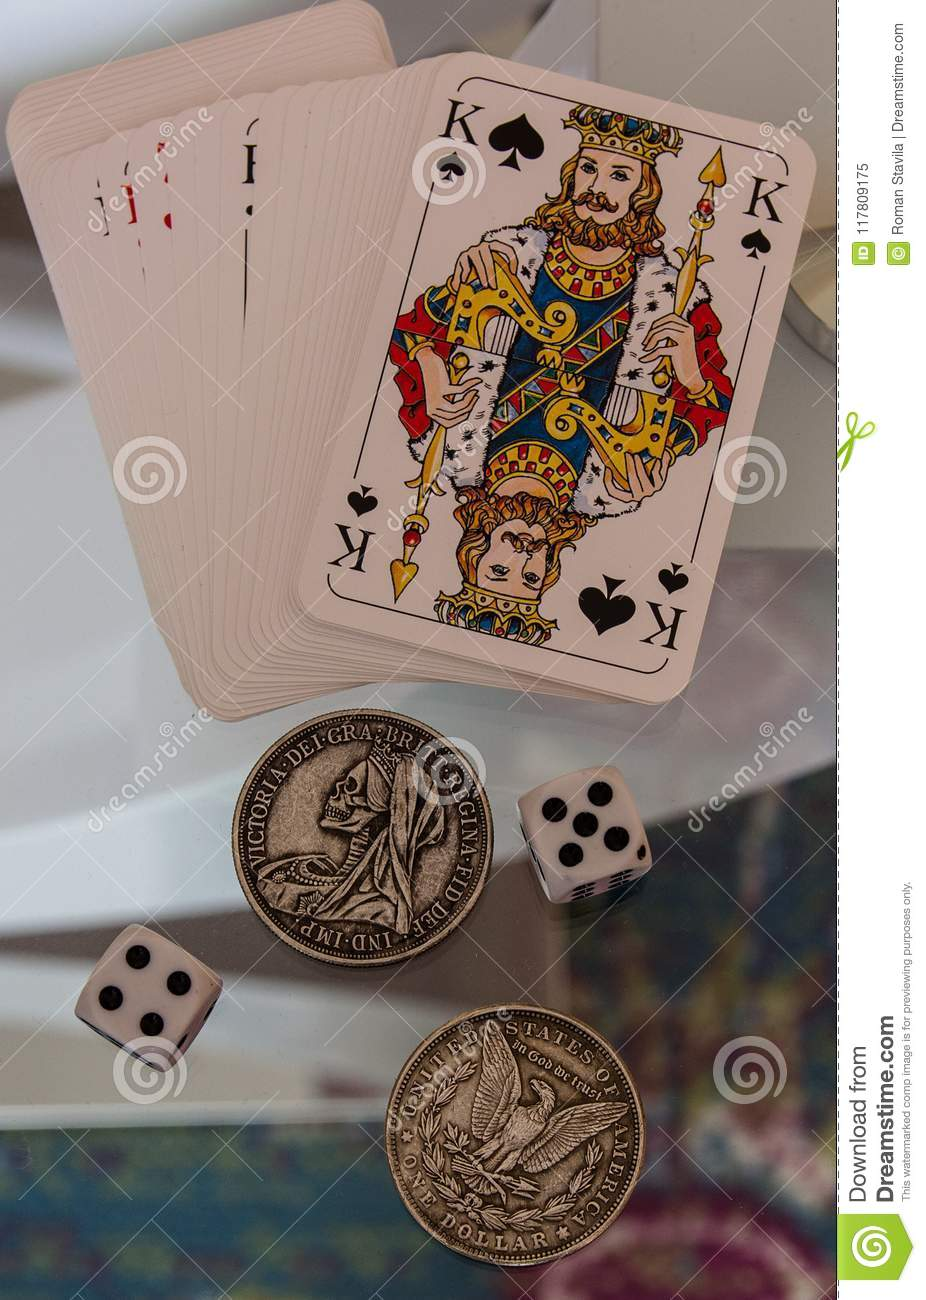 Dice, Coins And Playing Cards  Stock Image - Image of euro